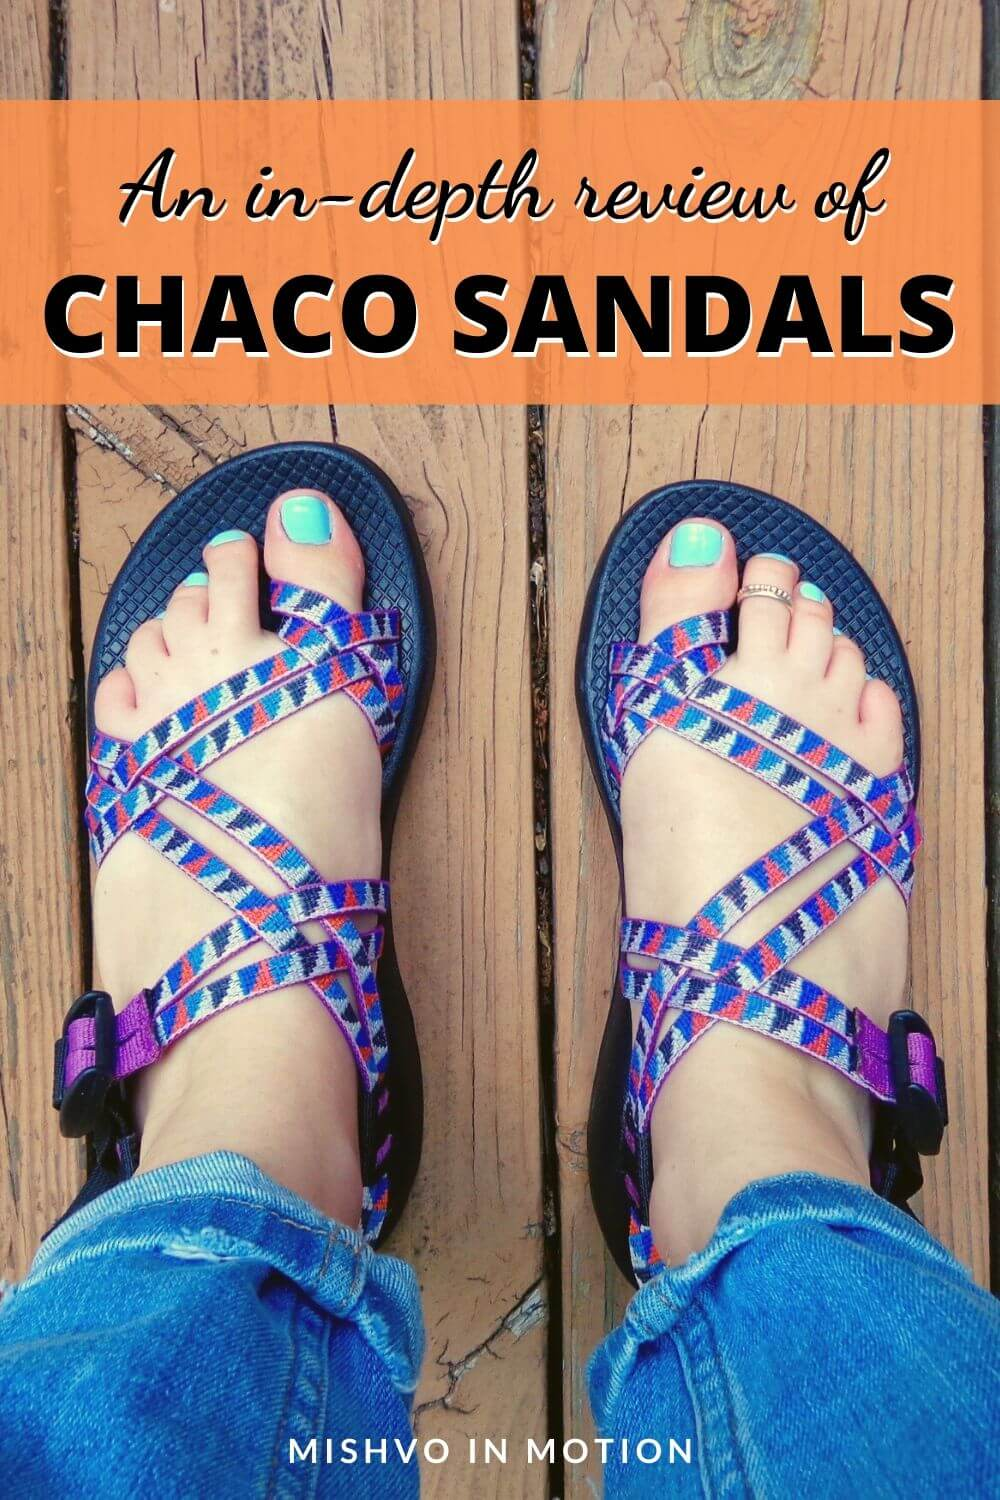 I find travel fashion to be sort of infuriating and hard to navigate: like I want to wear something cute but also comfortable and great for walking. I decided to get Chacos sandals for my next big trip but had trouble deciding between Chaco styles - so I got the Chaco ZX/2 and Chaco Z/2 and compared them in this post! Check out which travel sandals I chose as my go-to travel shoe. #travelsandals #chacosandals #travelshoes #travelfashion